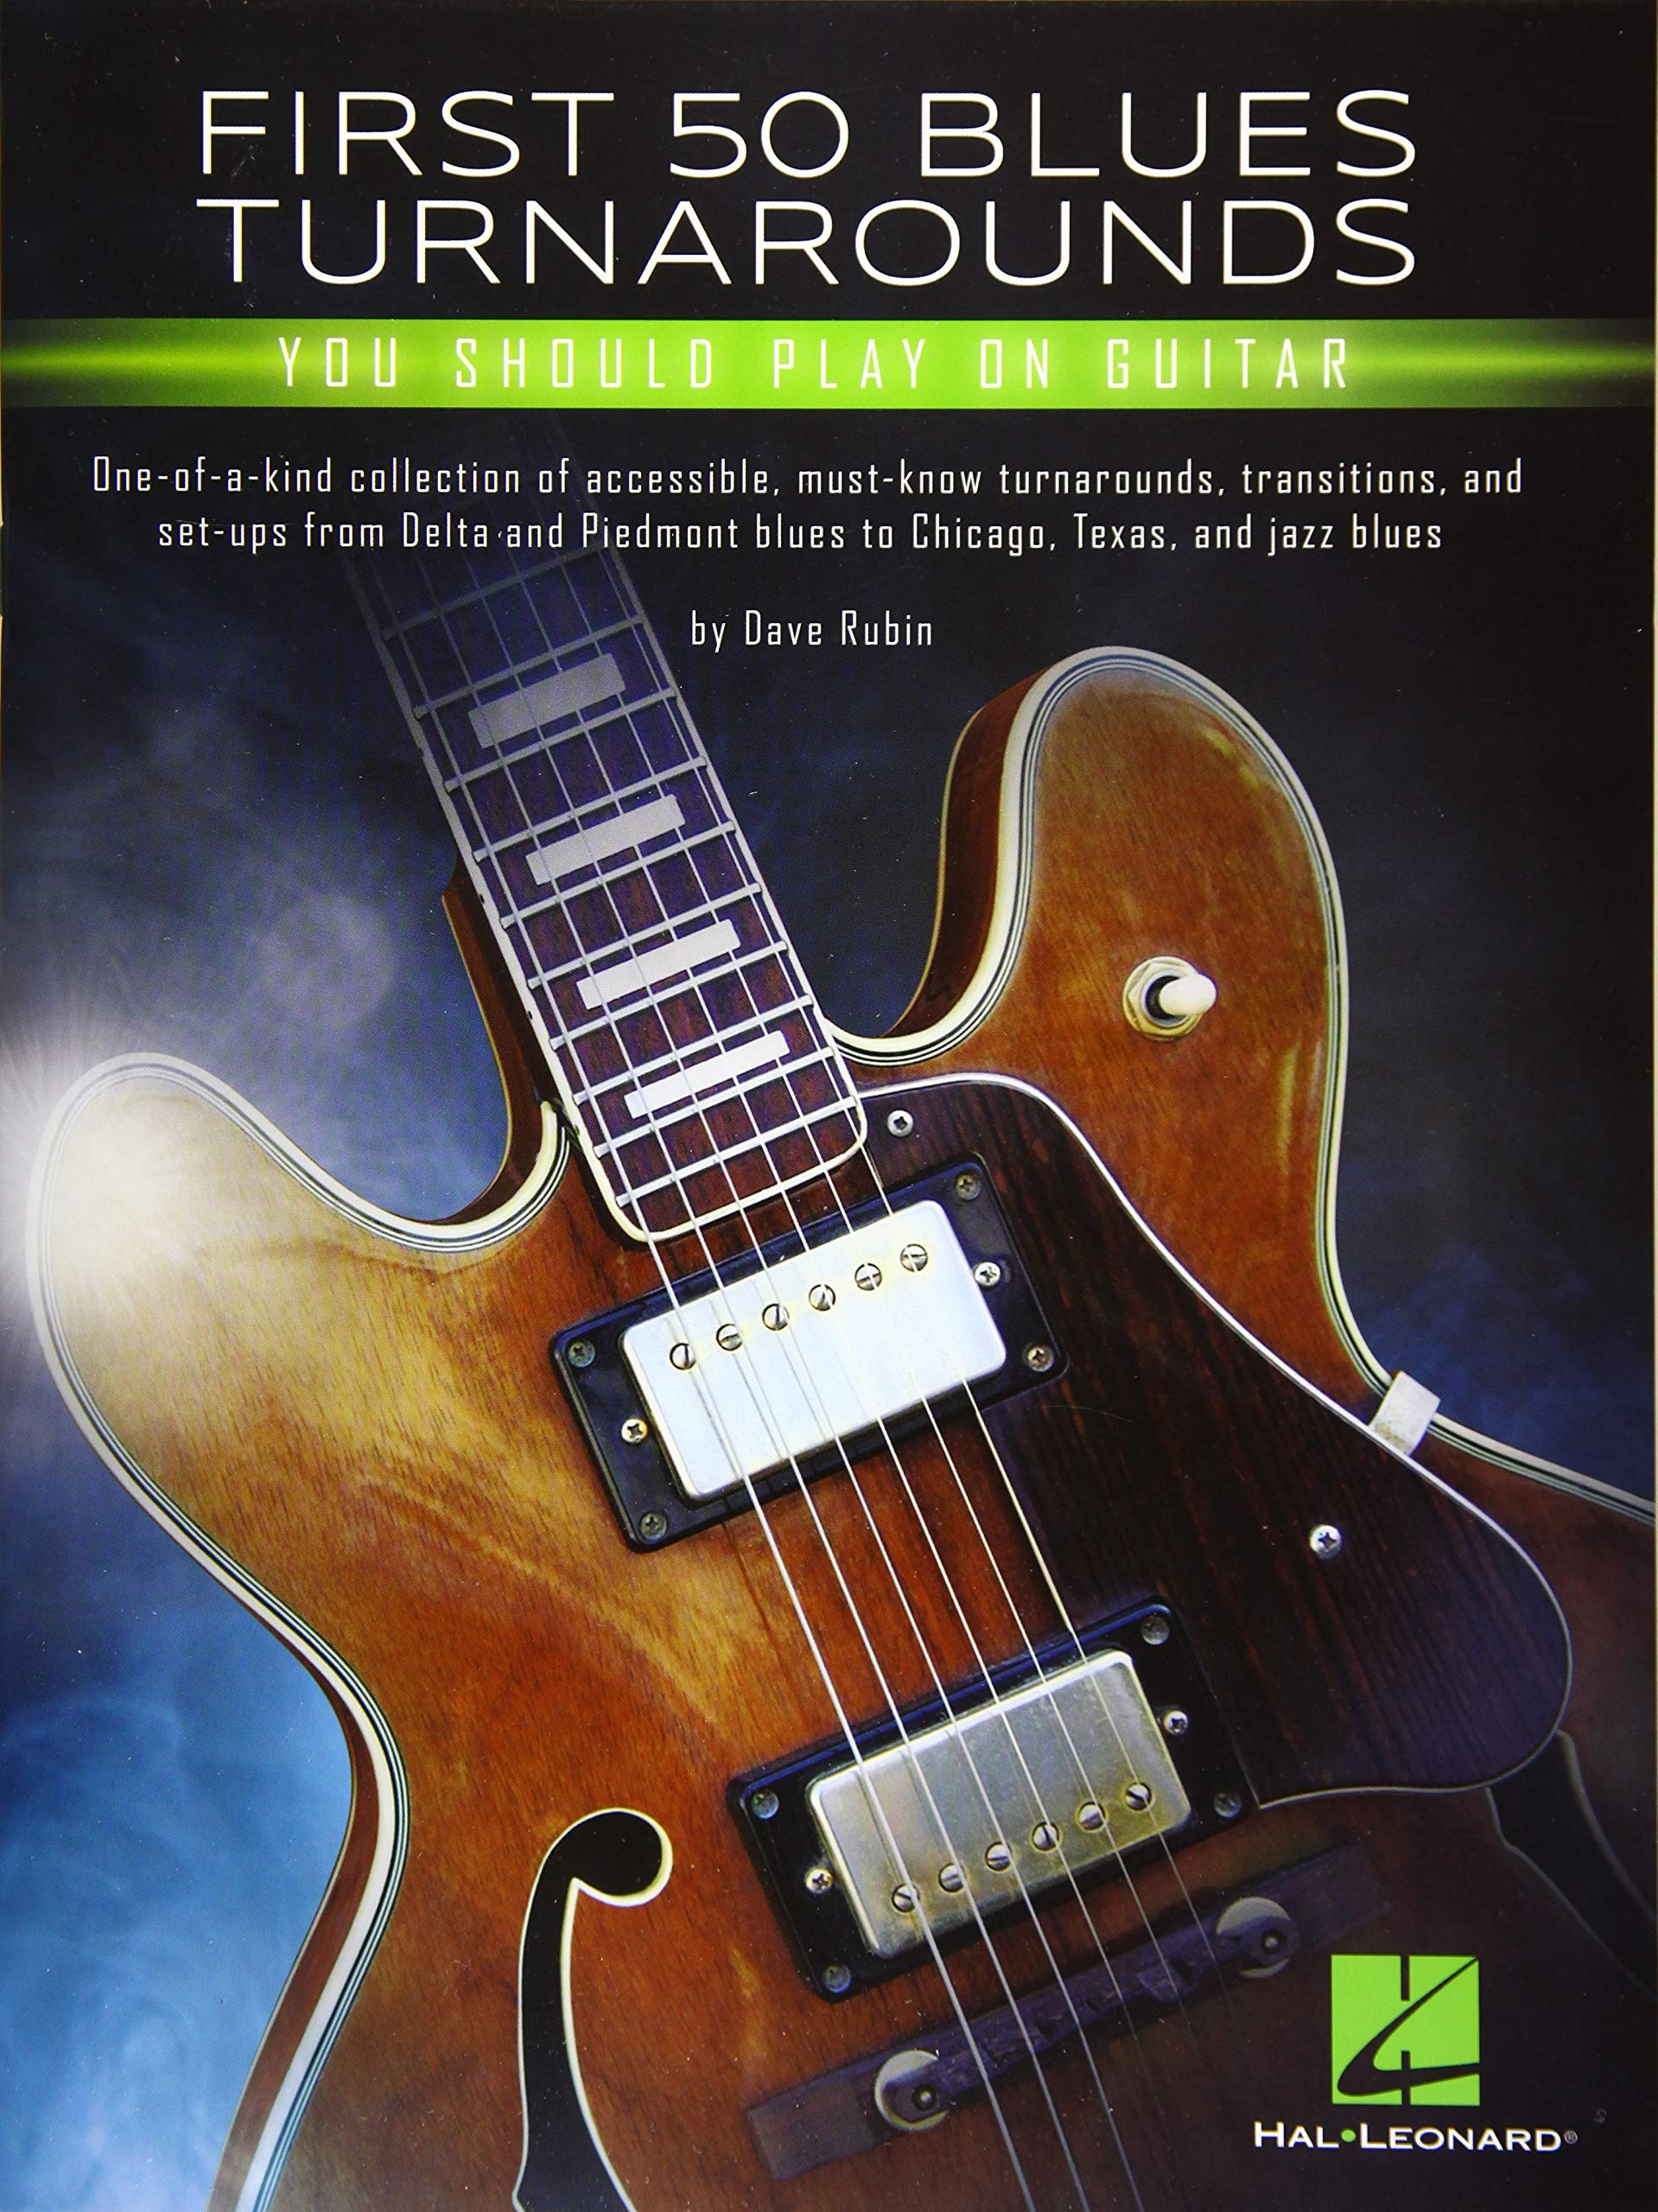 First 50 Blues Turnarounds You Should Play on Guitar: Amazon.es ...